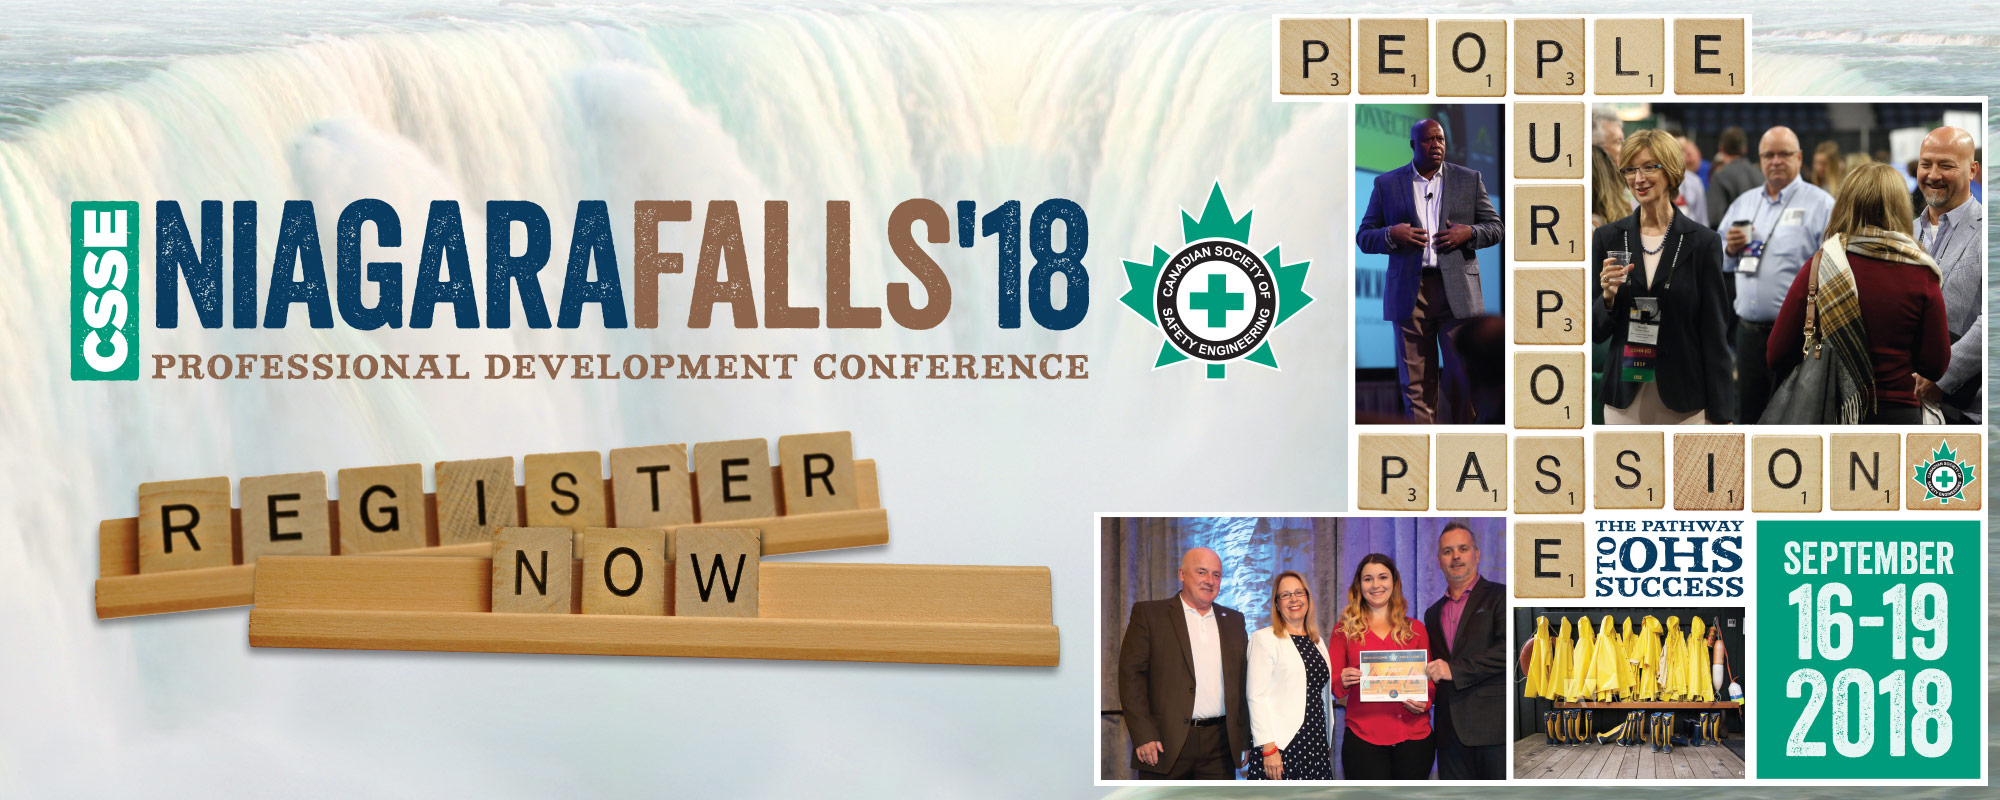 Register for Conference 2018 in Niagara Falls